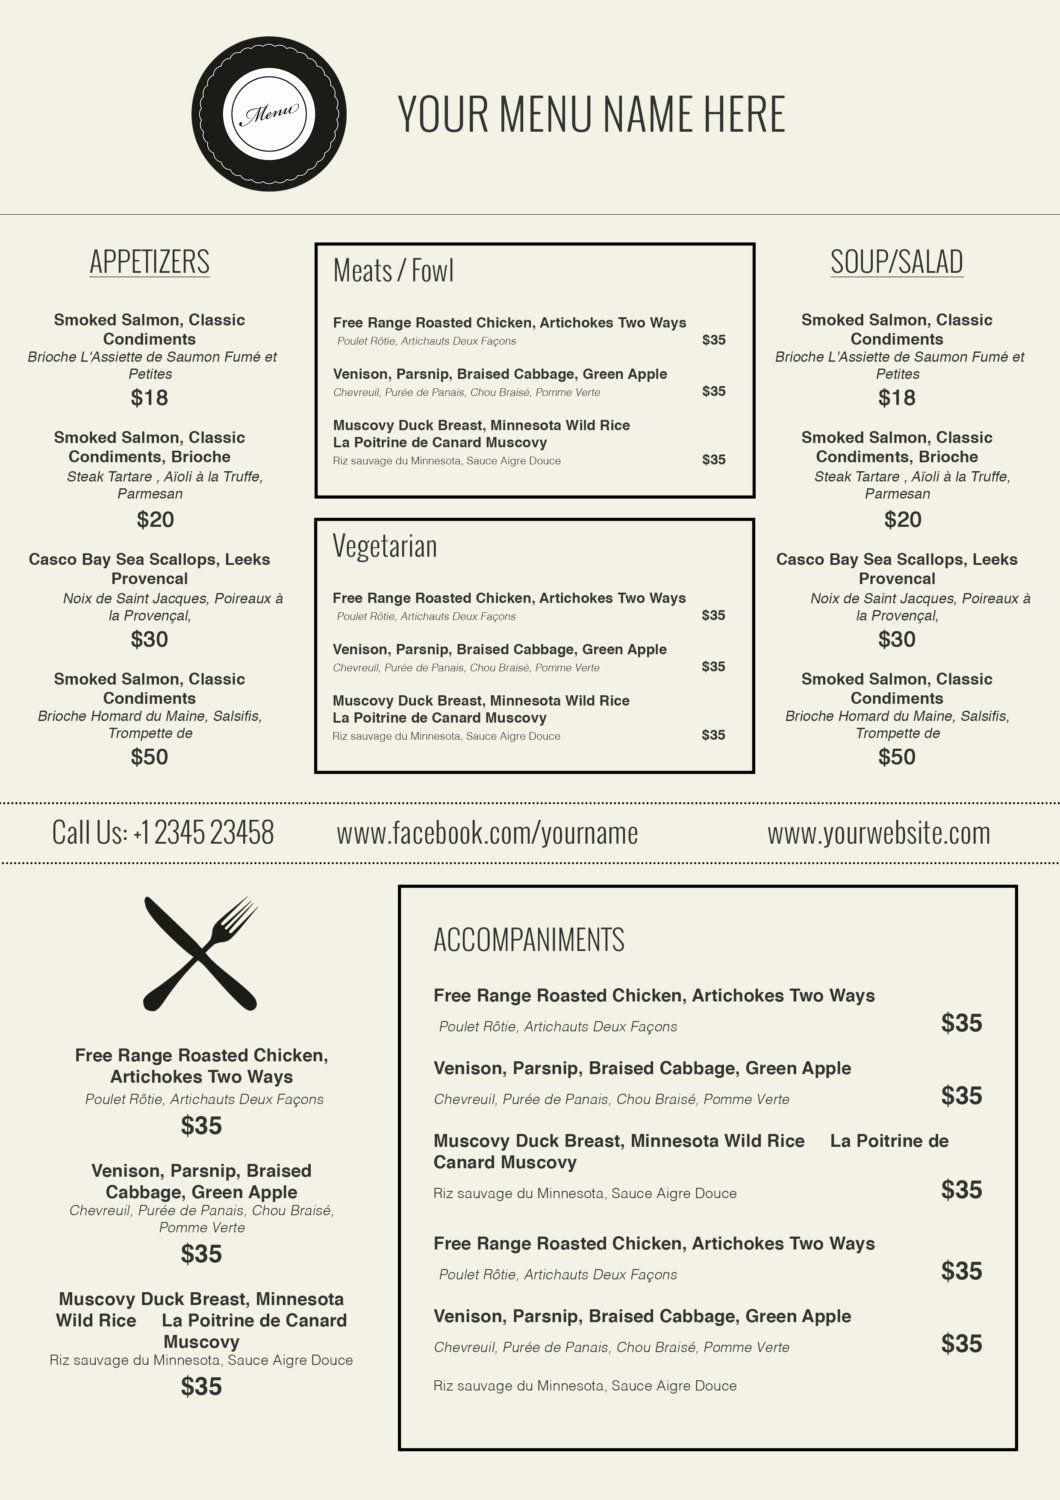 000 Incredible Free Printable Menu Template Highest Quality  For Dinner Party FamilyFull